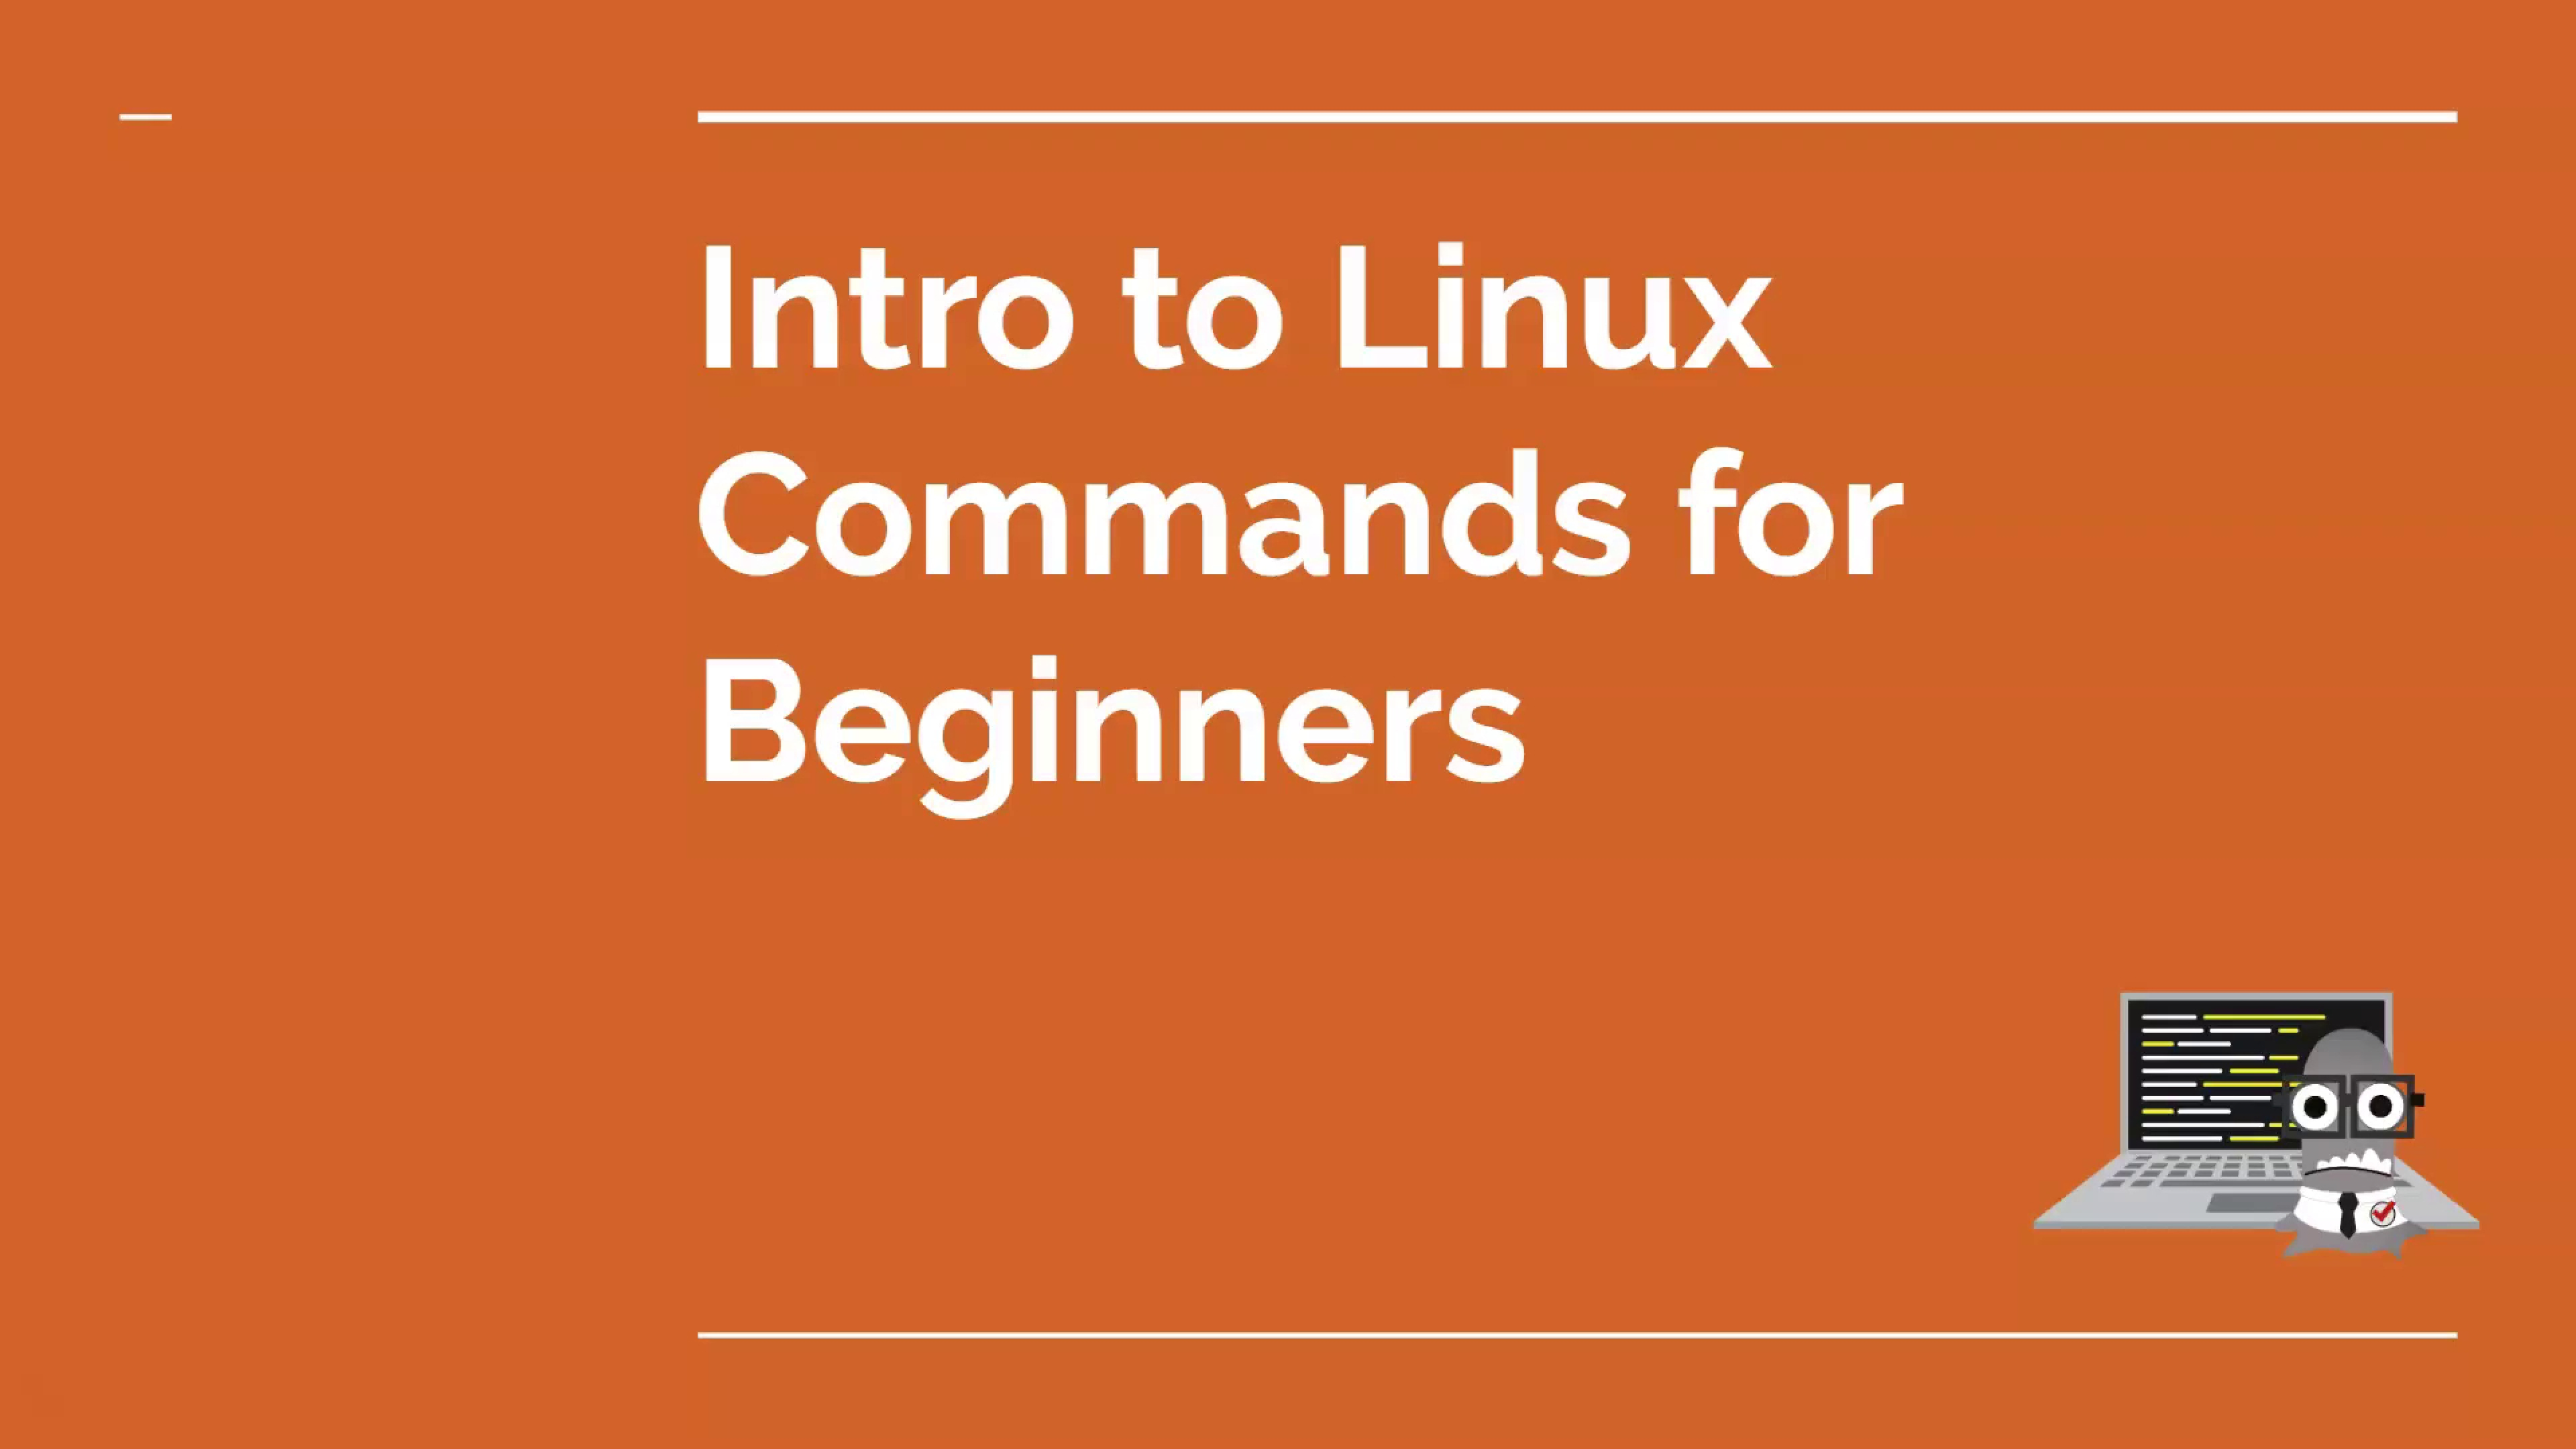 Introduction to Linux Commands for Beginners